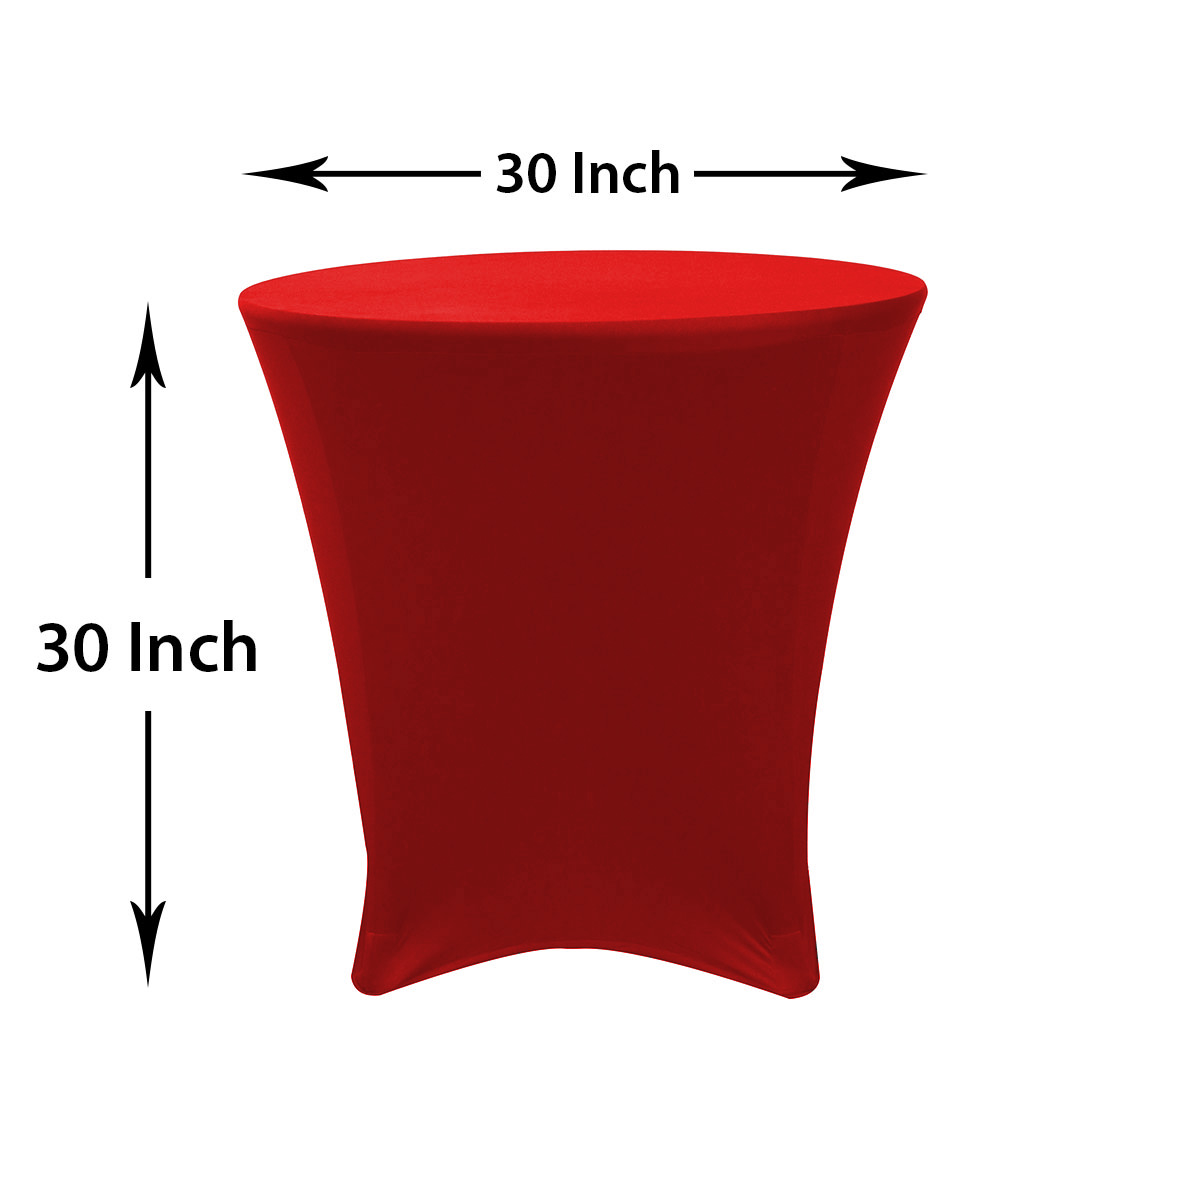 30-30-inch-lowboy-cocktail-spandex-table-covers-red-dimensions.jpg